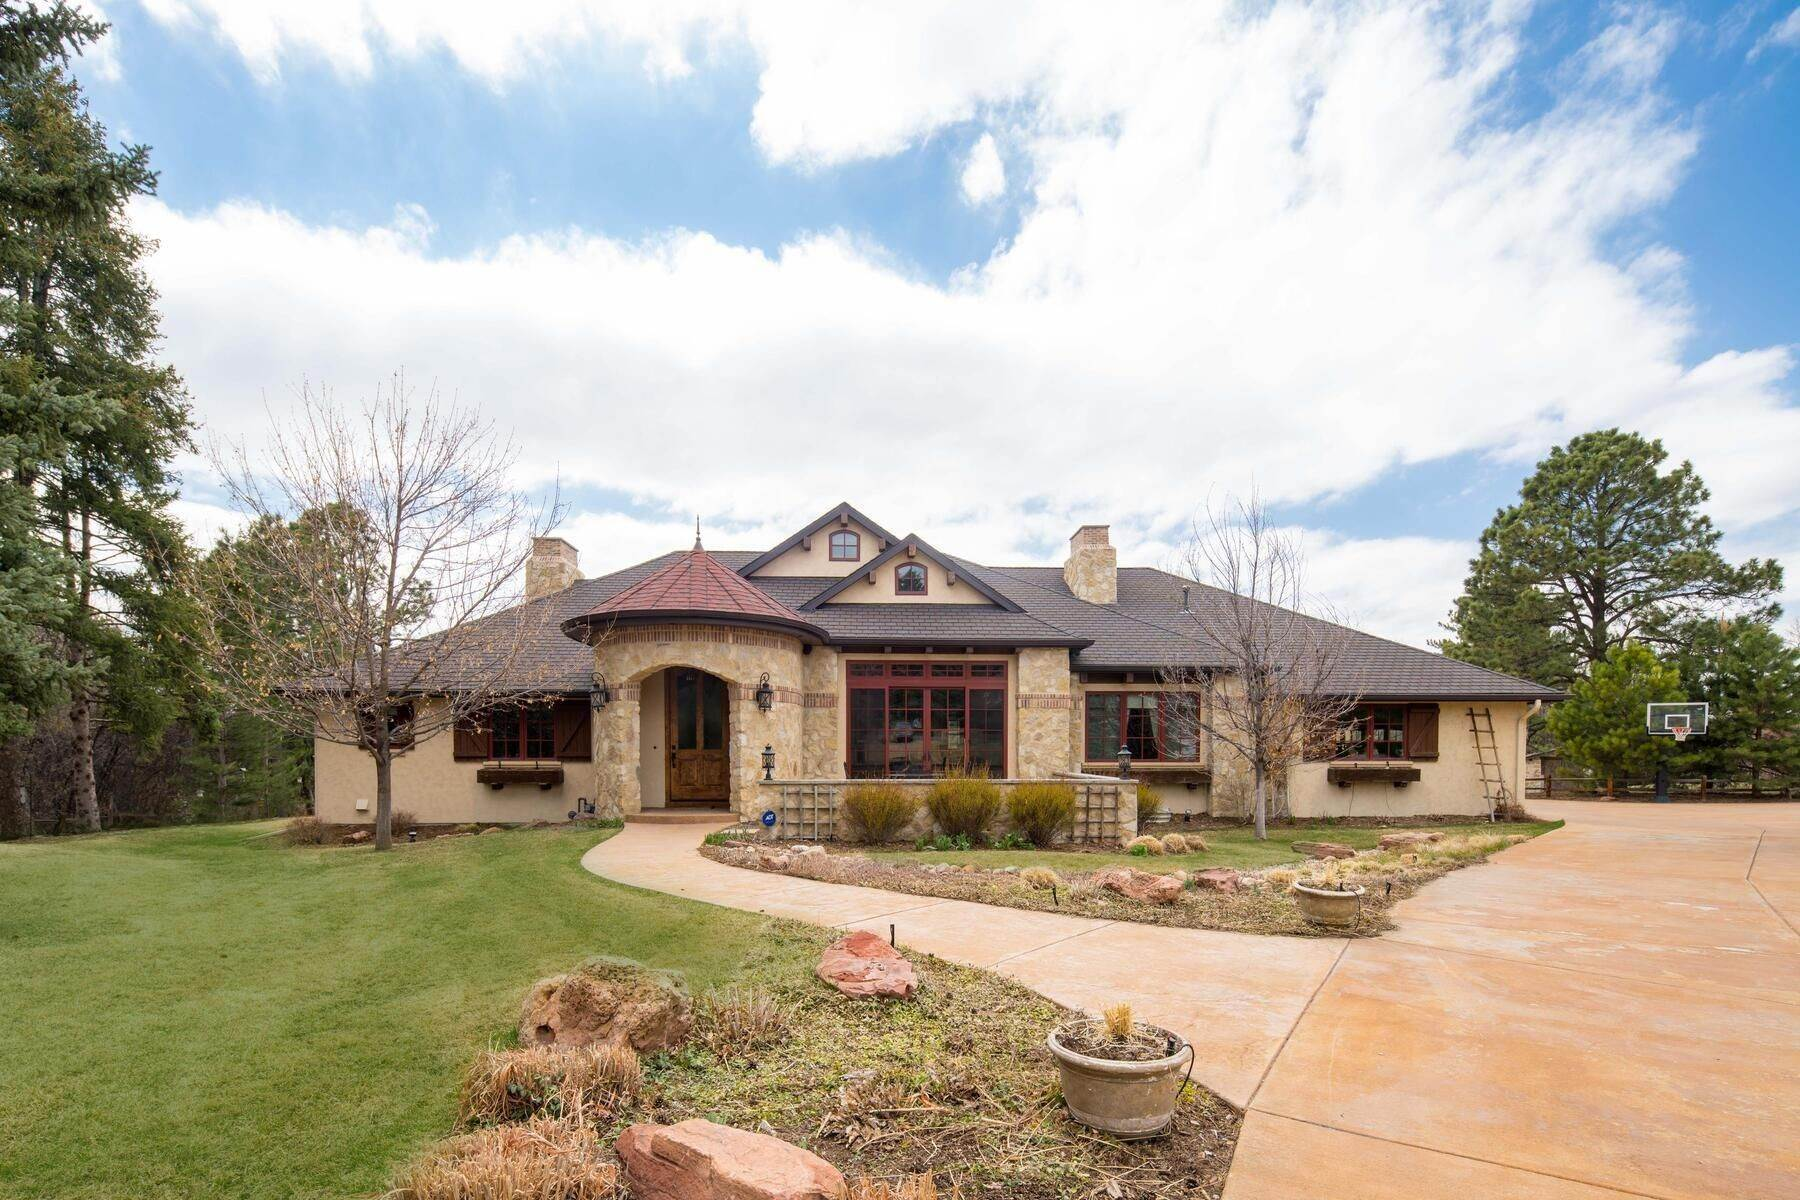 Single Family Homes for Active at 6156 E Powers Avenue, Greenwood Village, Co, 80111 6156 E Powers Avenue Greenwood Village, Colorado 80111 United States